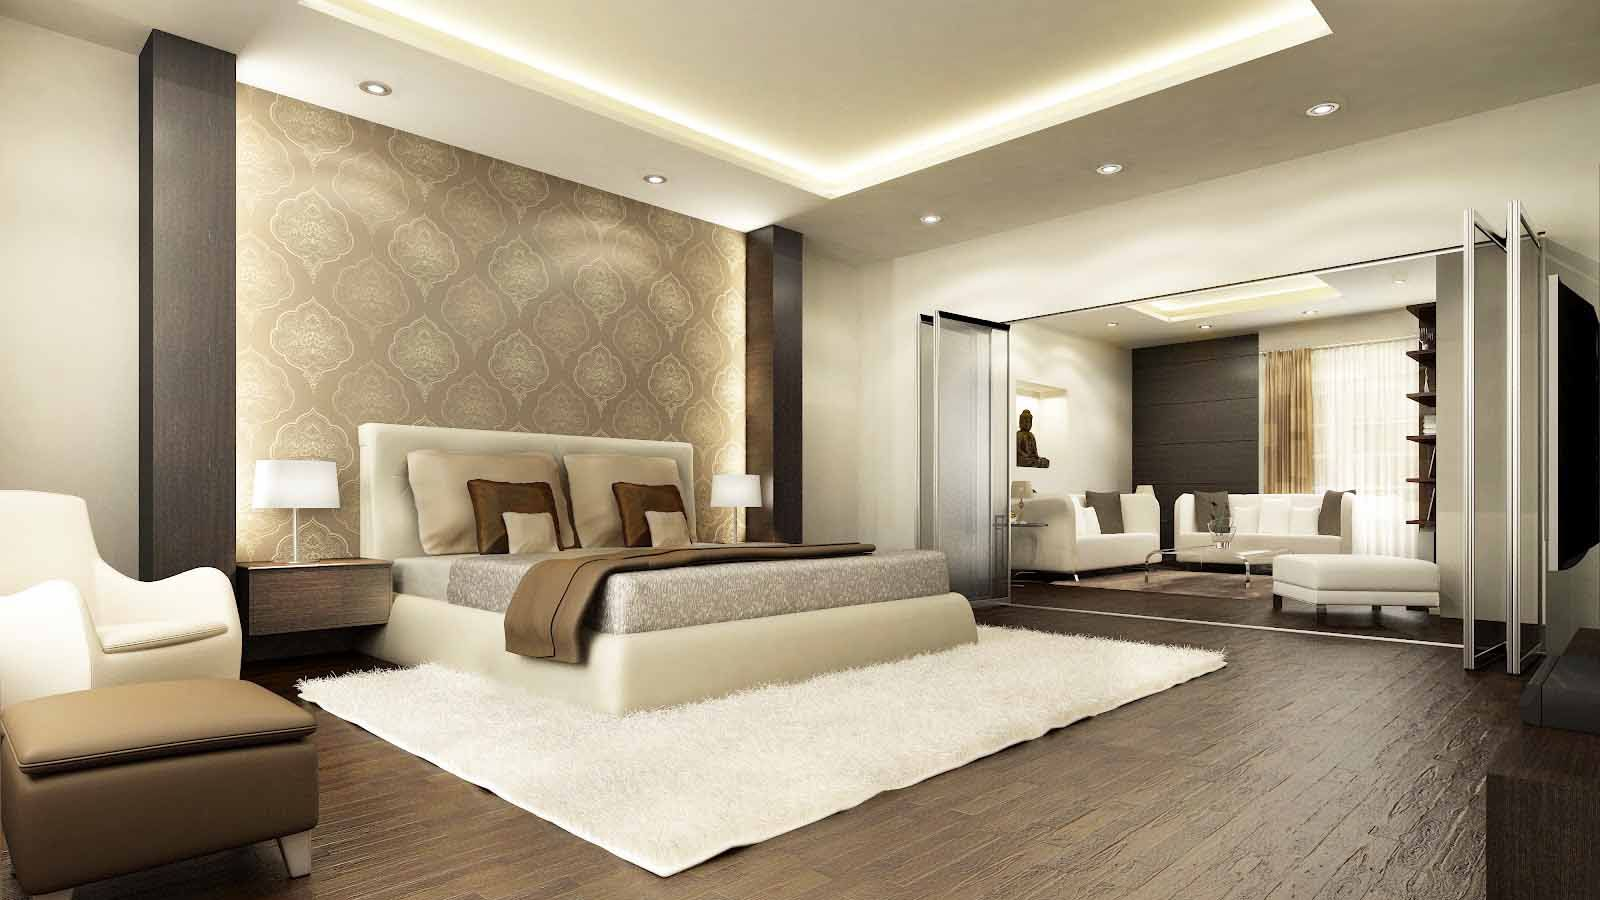 Elegant Ceiling Designs  Bedroom Modern Bedroom Suites Also Alluring Designer Bedroom Suites Design Decoration